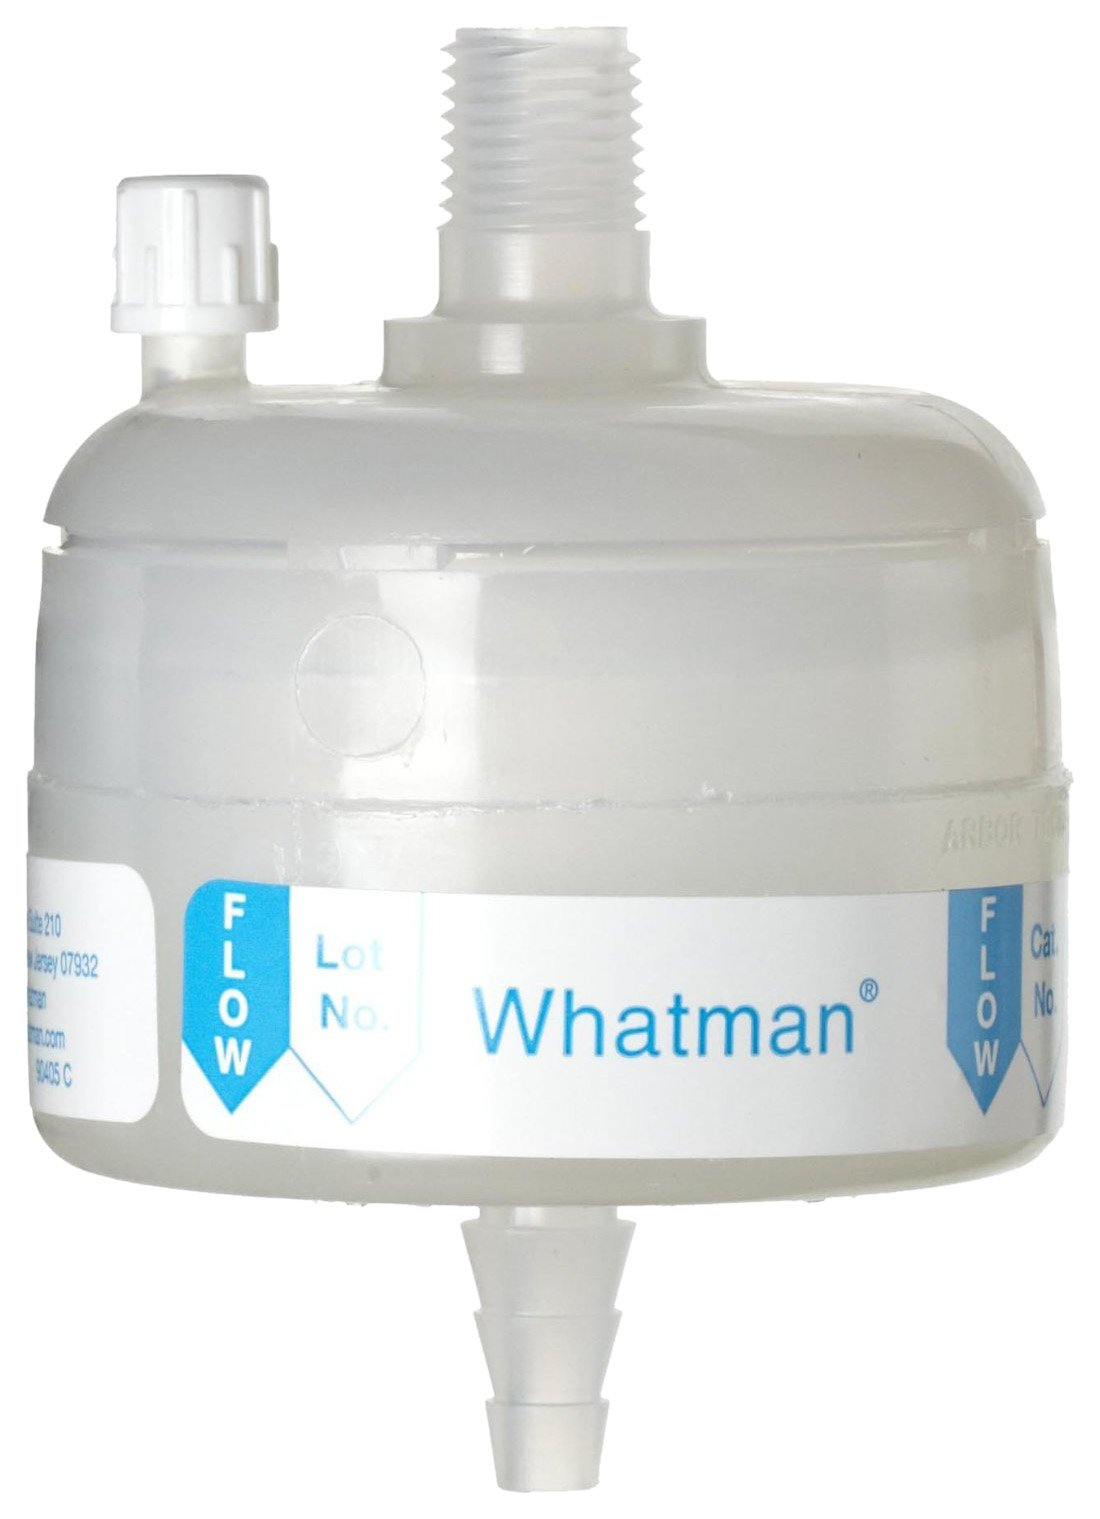 3//8 x 1//2 Inlet Pack of 10 Whatman 6713-1650 PTFE PolyVENT 16 Venting Filter Discs Membrane Stepped Barb Fittings 50mm Diameter 3//8 x 1//2 Outlet 3//8 x 1//2 Inlet 3//8 x 1//2 Outlet WHA-6713-1650 0.2 Micron